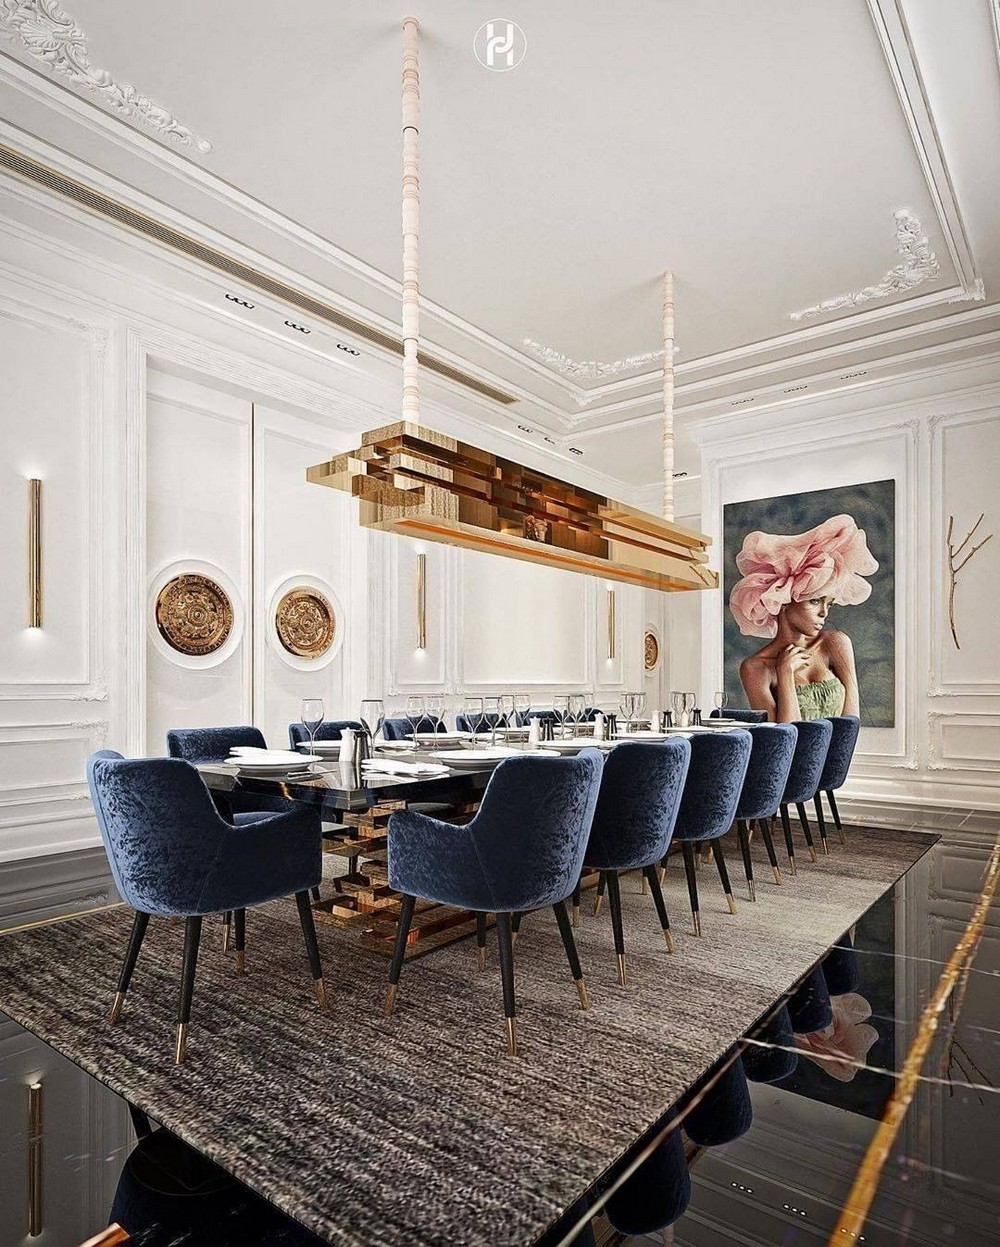 The Best Dining Room Designs You Will Find On Instagram dining room designs The Best Dining Room Designs You Will Find On Instagram 104410785 152957119675363 3592945543743635605 n